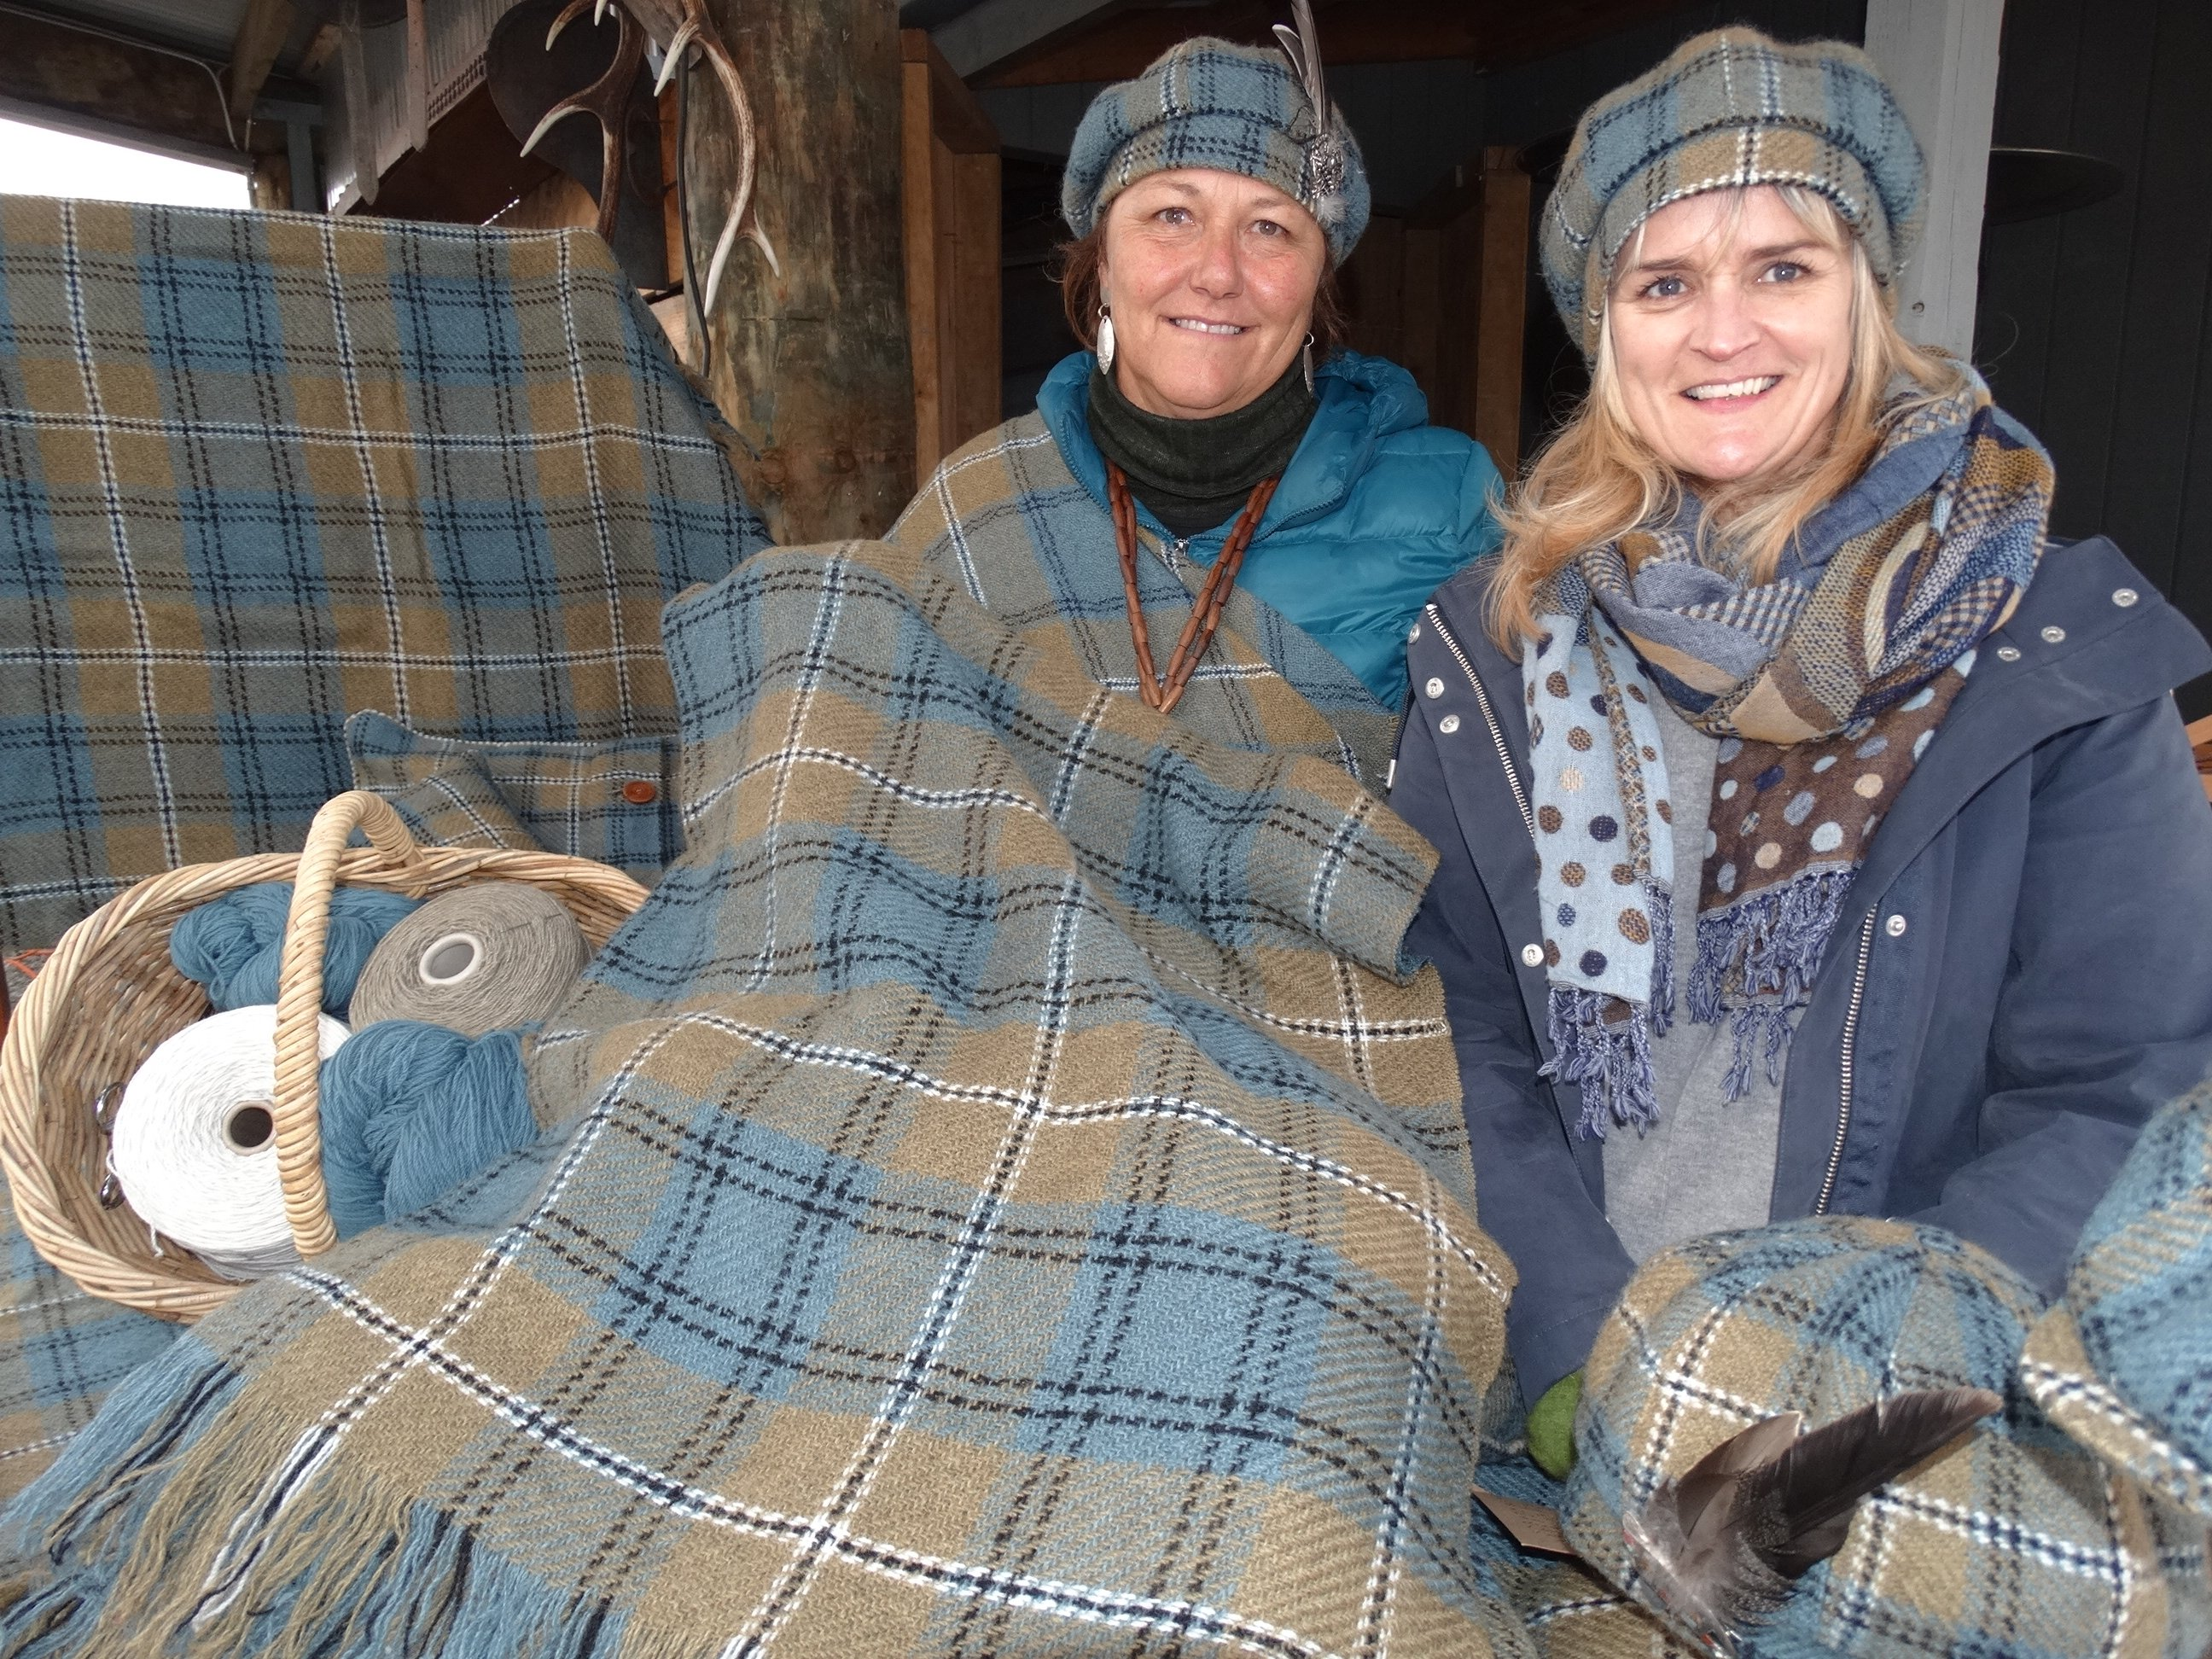 The Southern Lakes tartan was unveiled at the Great Glenorchy Getaway Day by the creator's daughter, Hilary Johnstone (left) at Mrs Woolly's General Store. Also rugged up is Debbie Crompton, the store's general manager. Photo: Louise Scott.